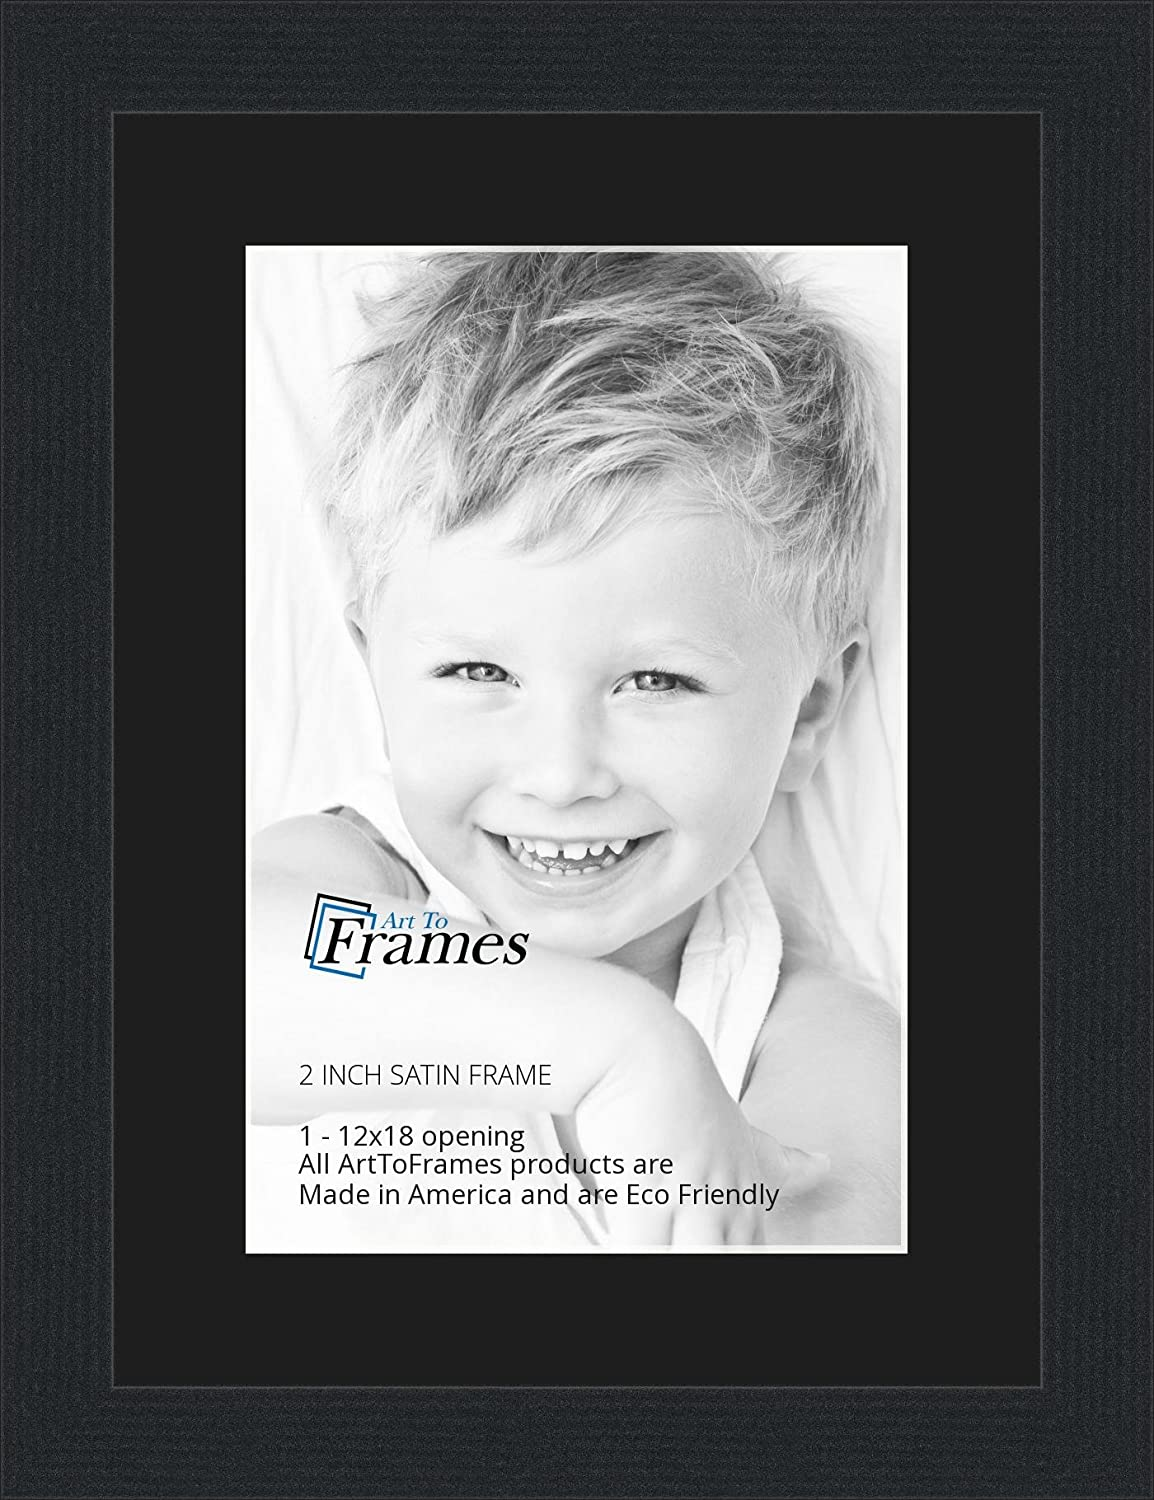 amazoncom 12x18 12 x 18 picture frame satin black 2 wide with a 2 double mat single frames